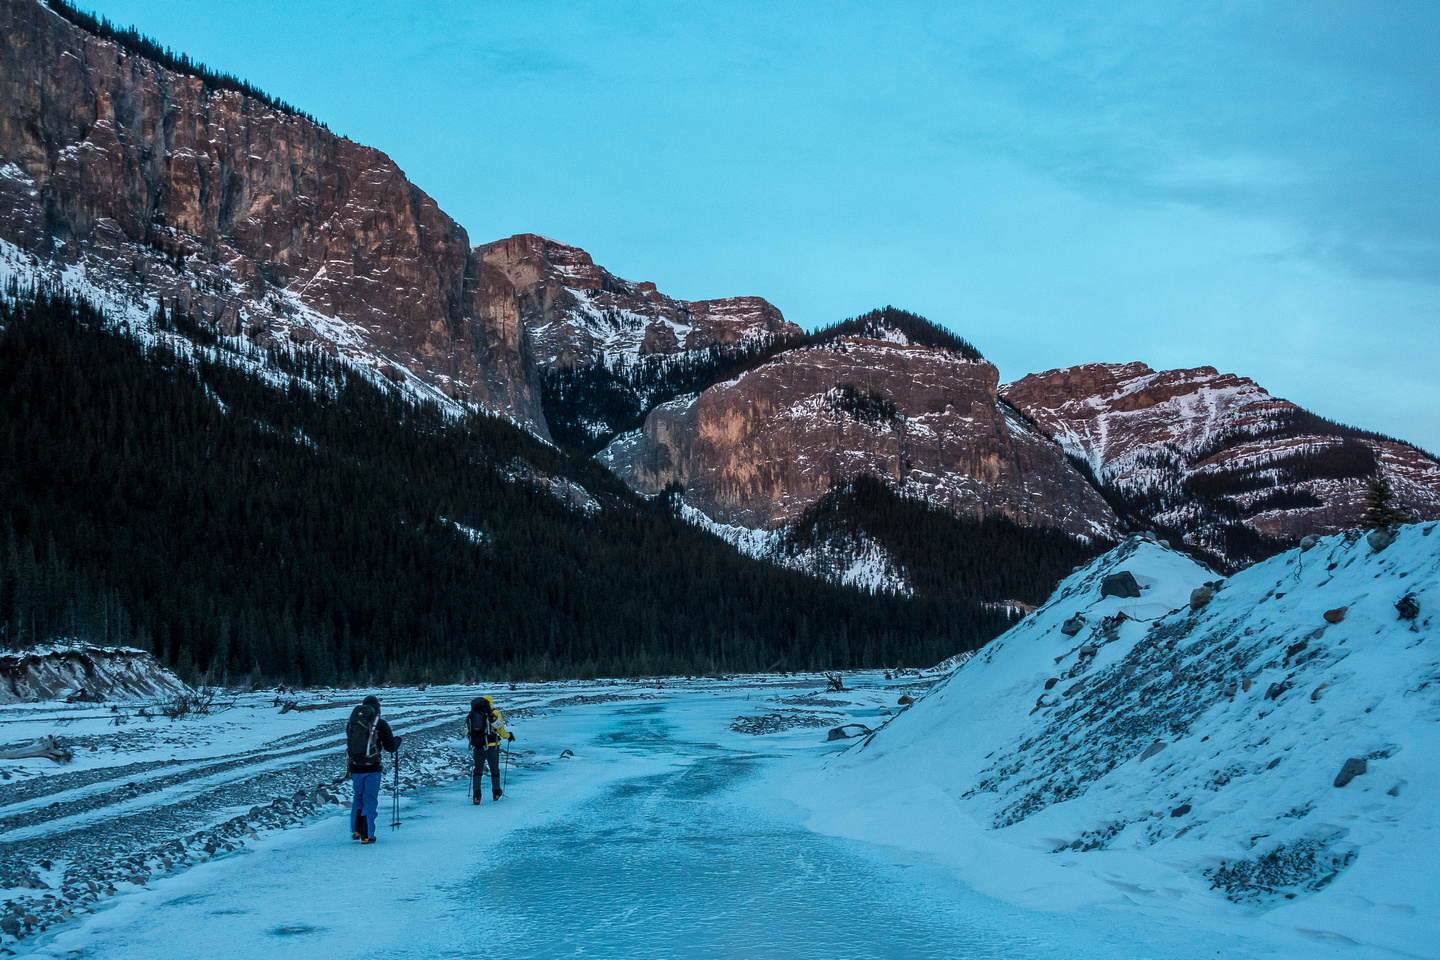 Walking along the partially frozen Ghost River.